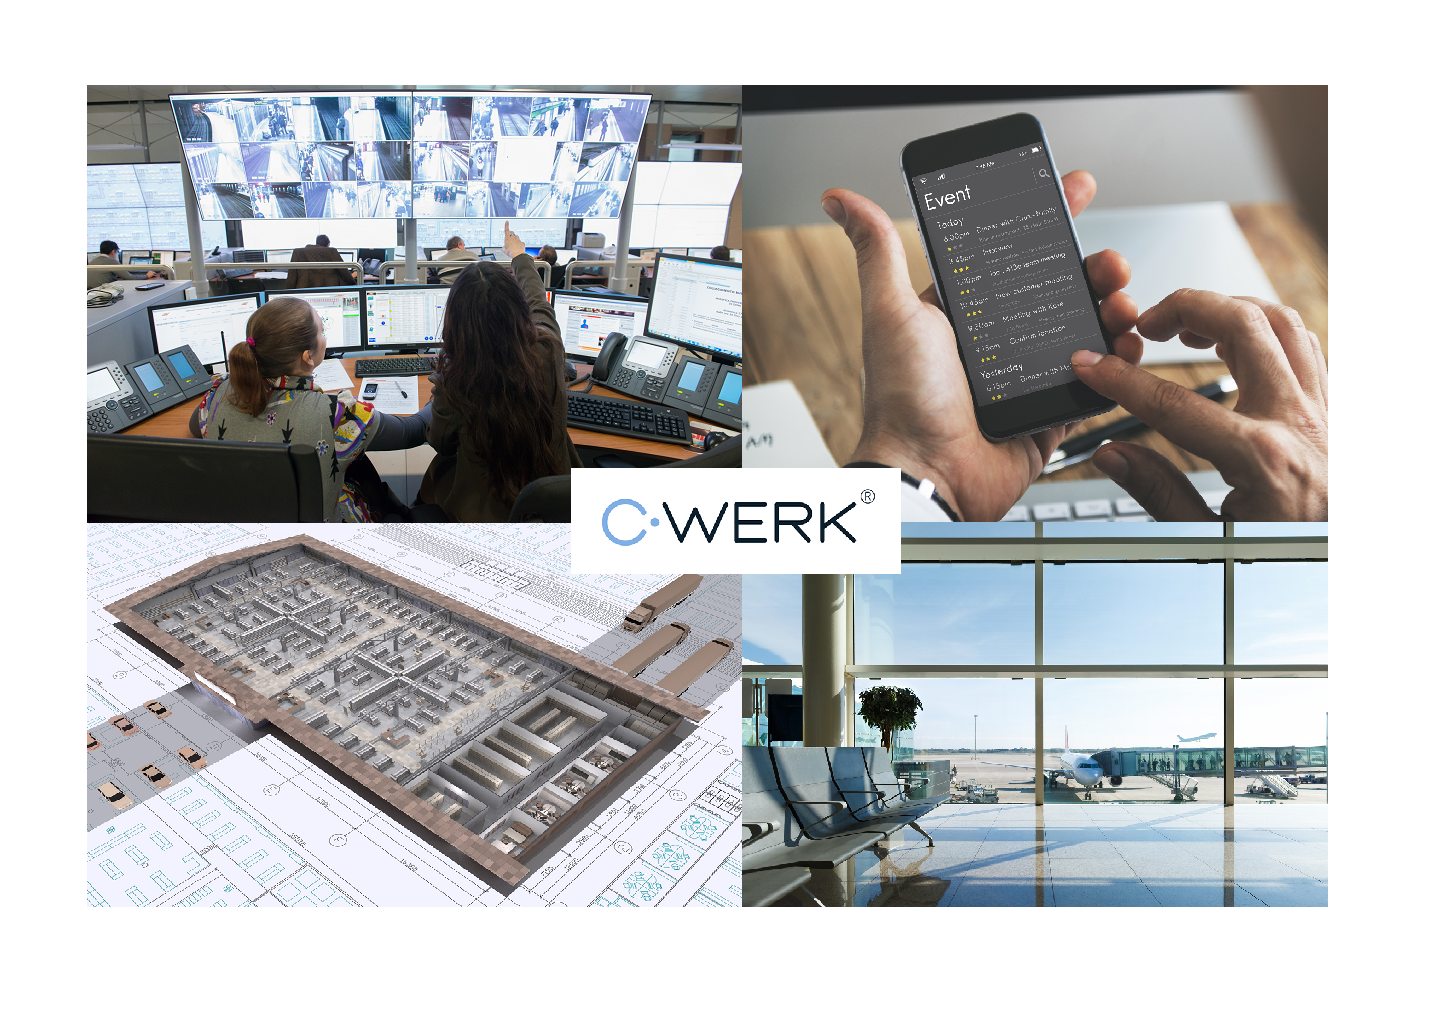 C-WERK Premium Source License